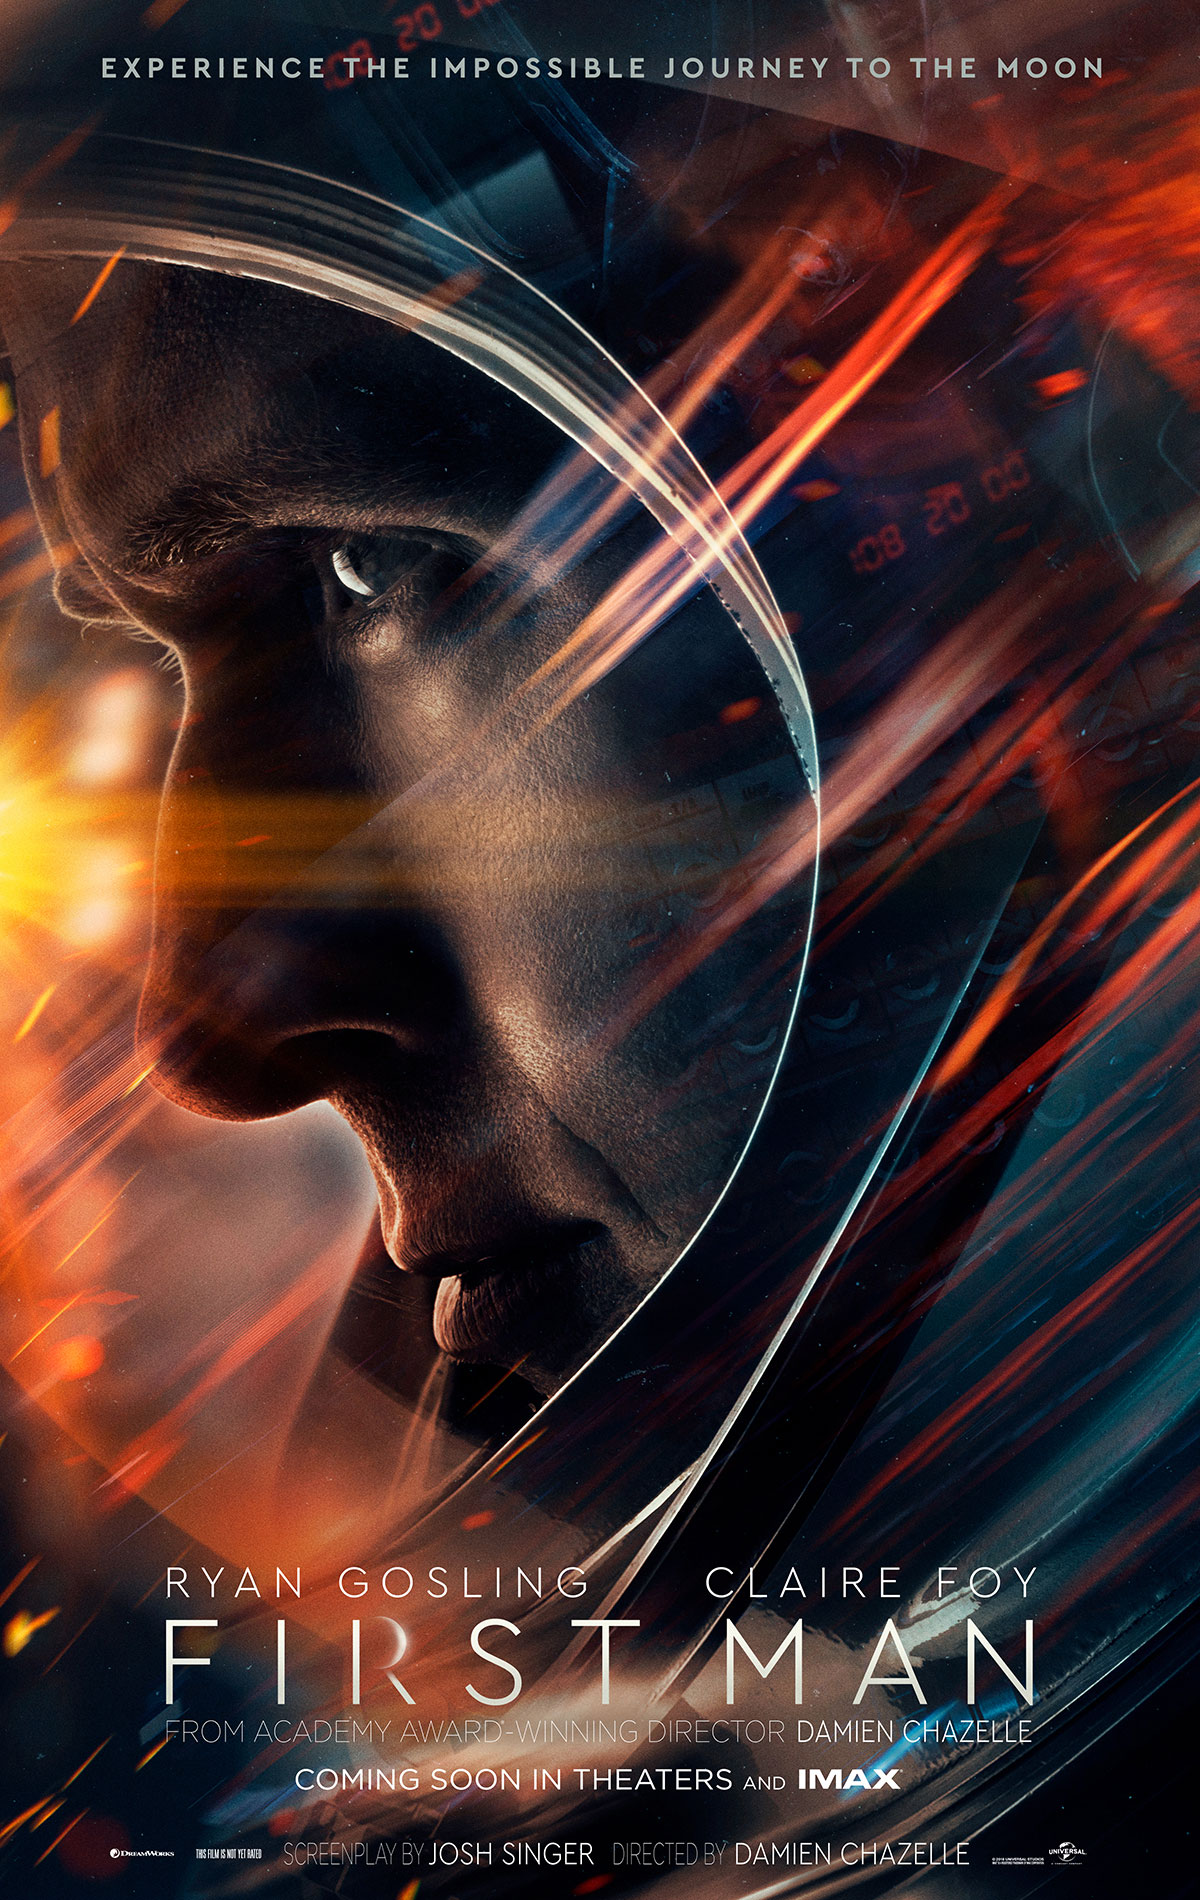 Spectacular First Trailer For Ryan Gosling's Neil Armstrong Film FIRST MAN11